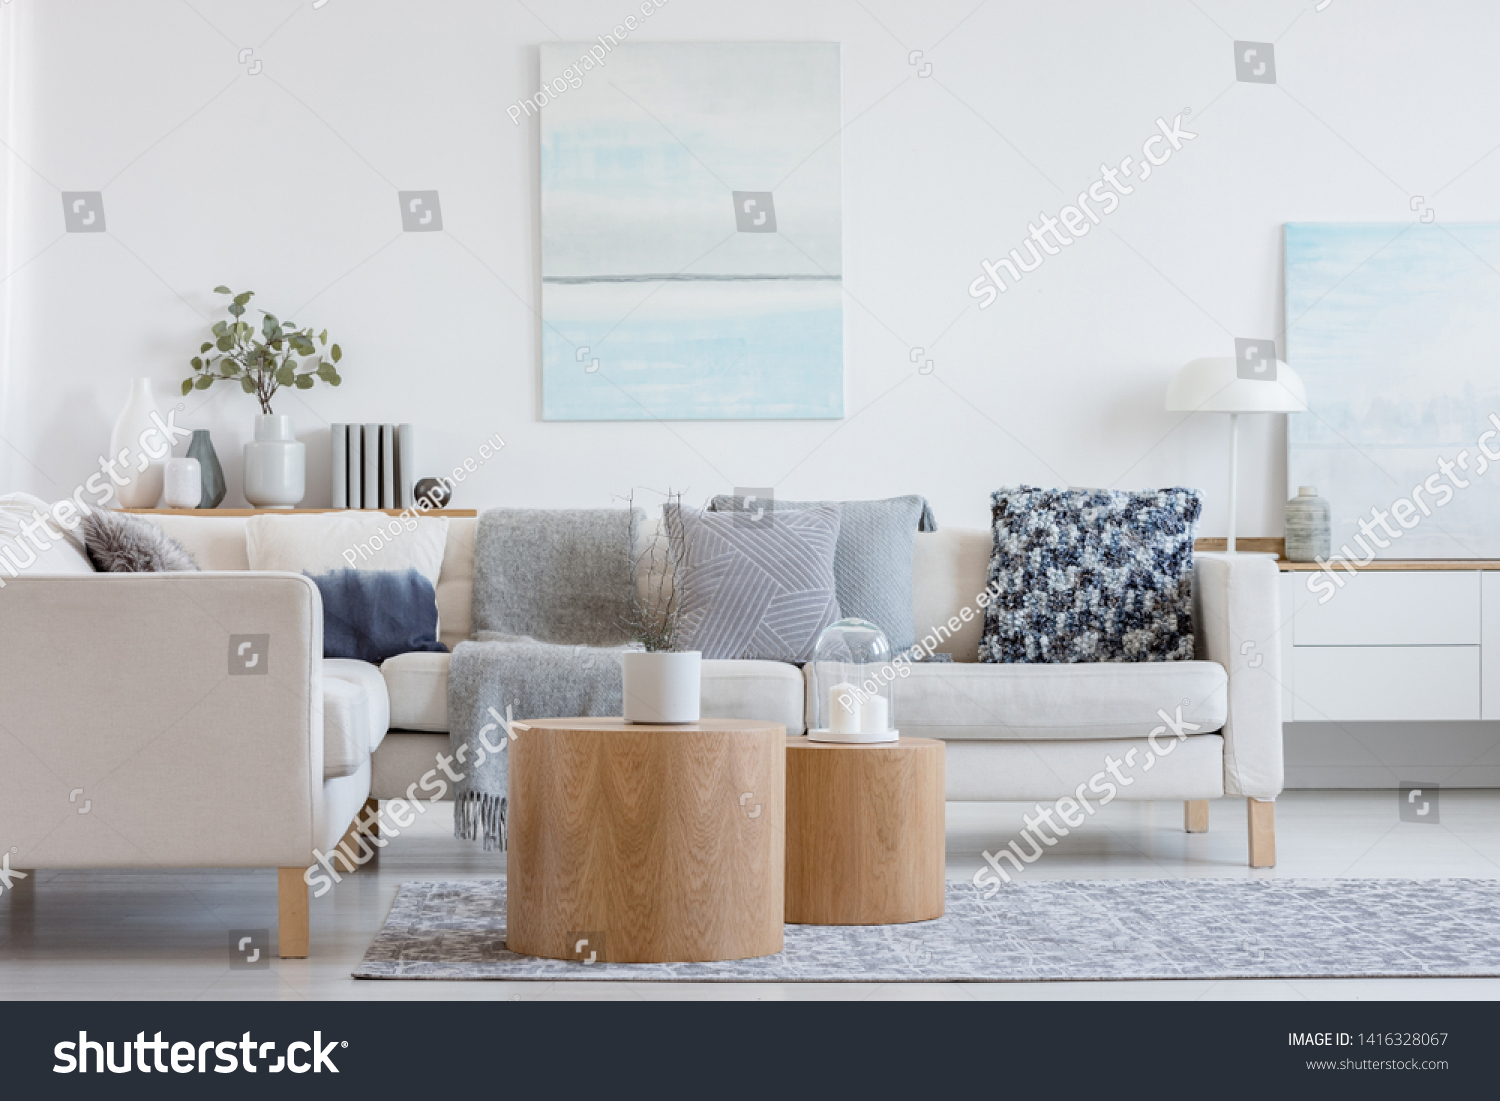 Two wooden coffee tables with plant in pot in front of grey corner sofa in fashionable living room interior #1416328067